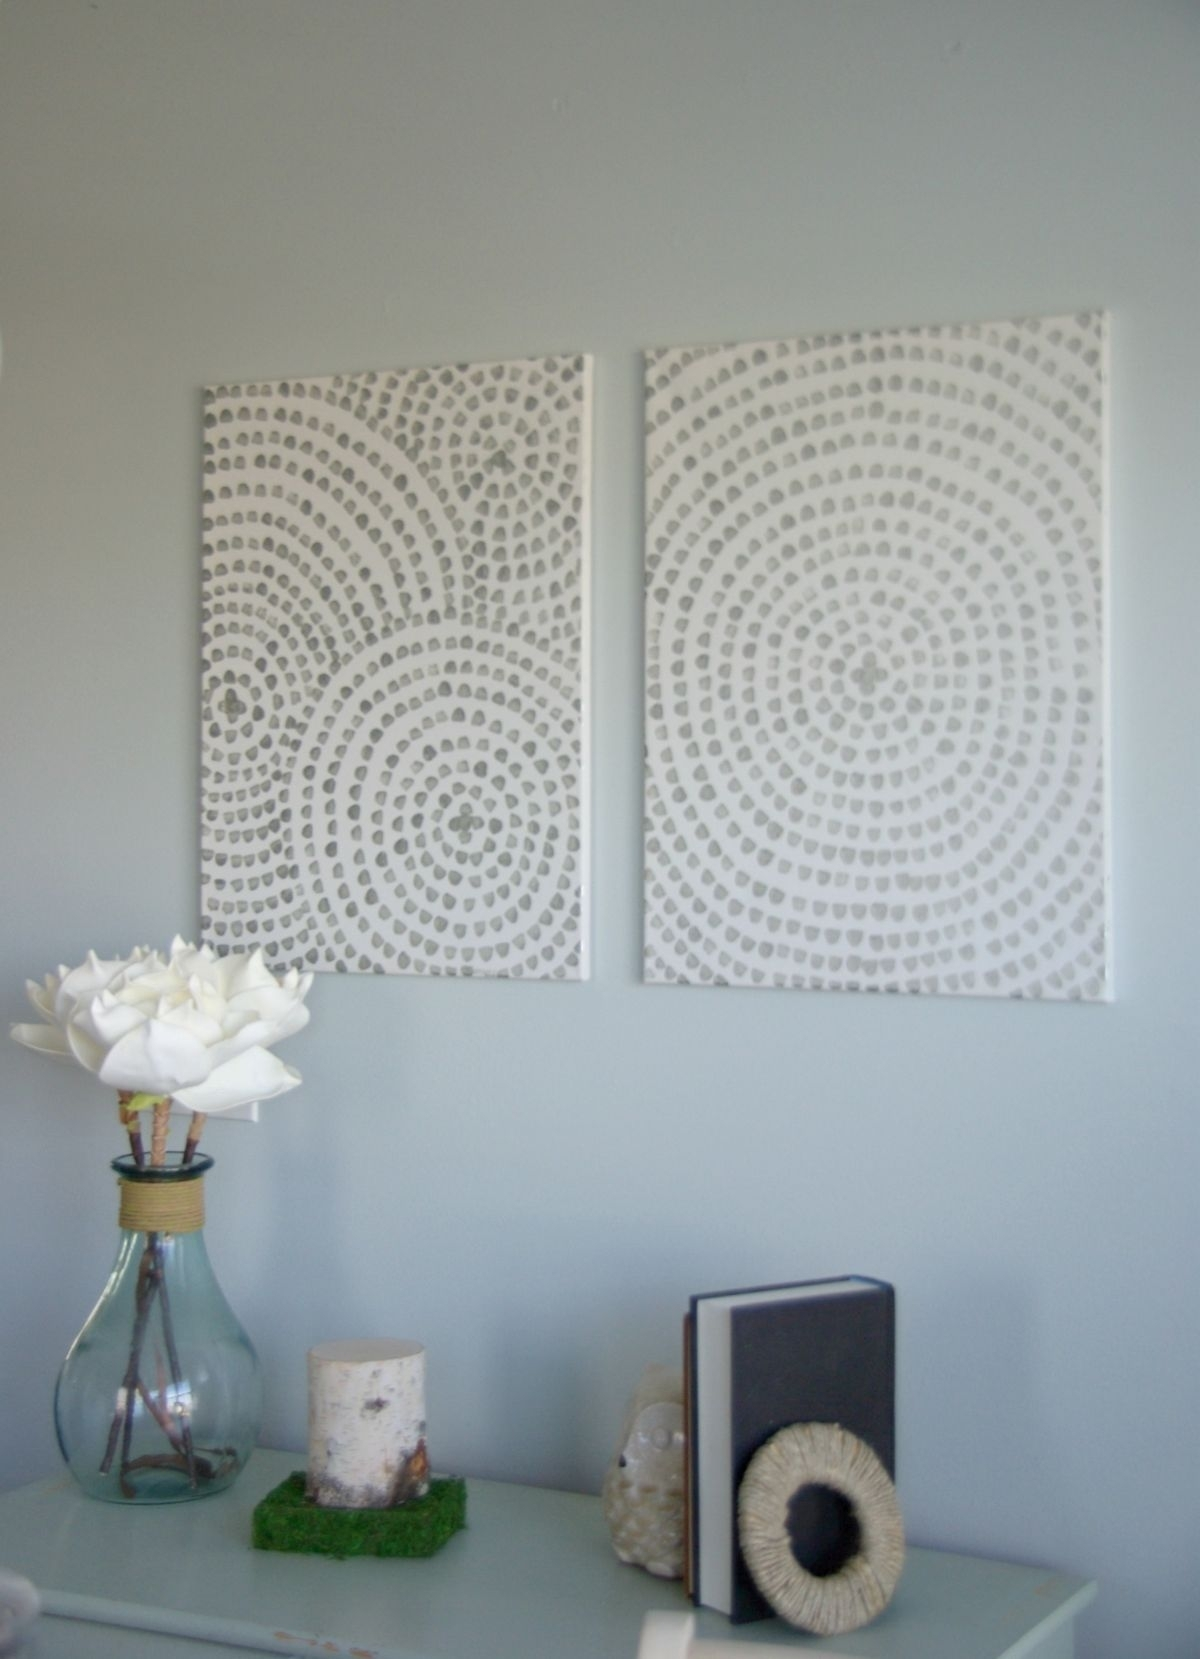 Diy Canvas Wall Art - A Low Cost Way To Add Art To Your Home | Diy with regard to Latest Homemade Wall Art With Fabric